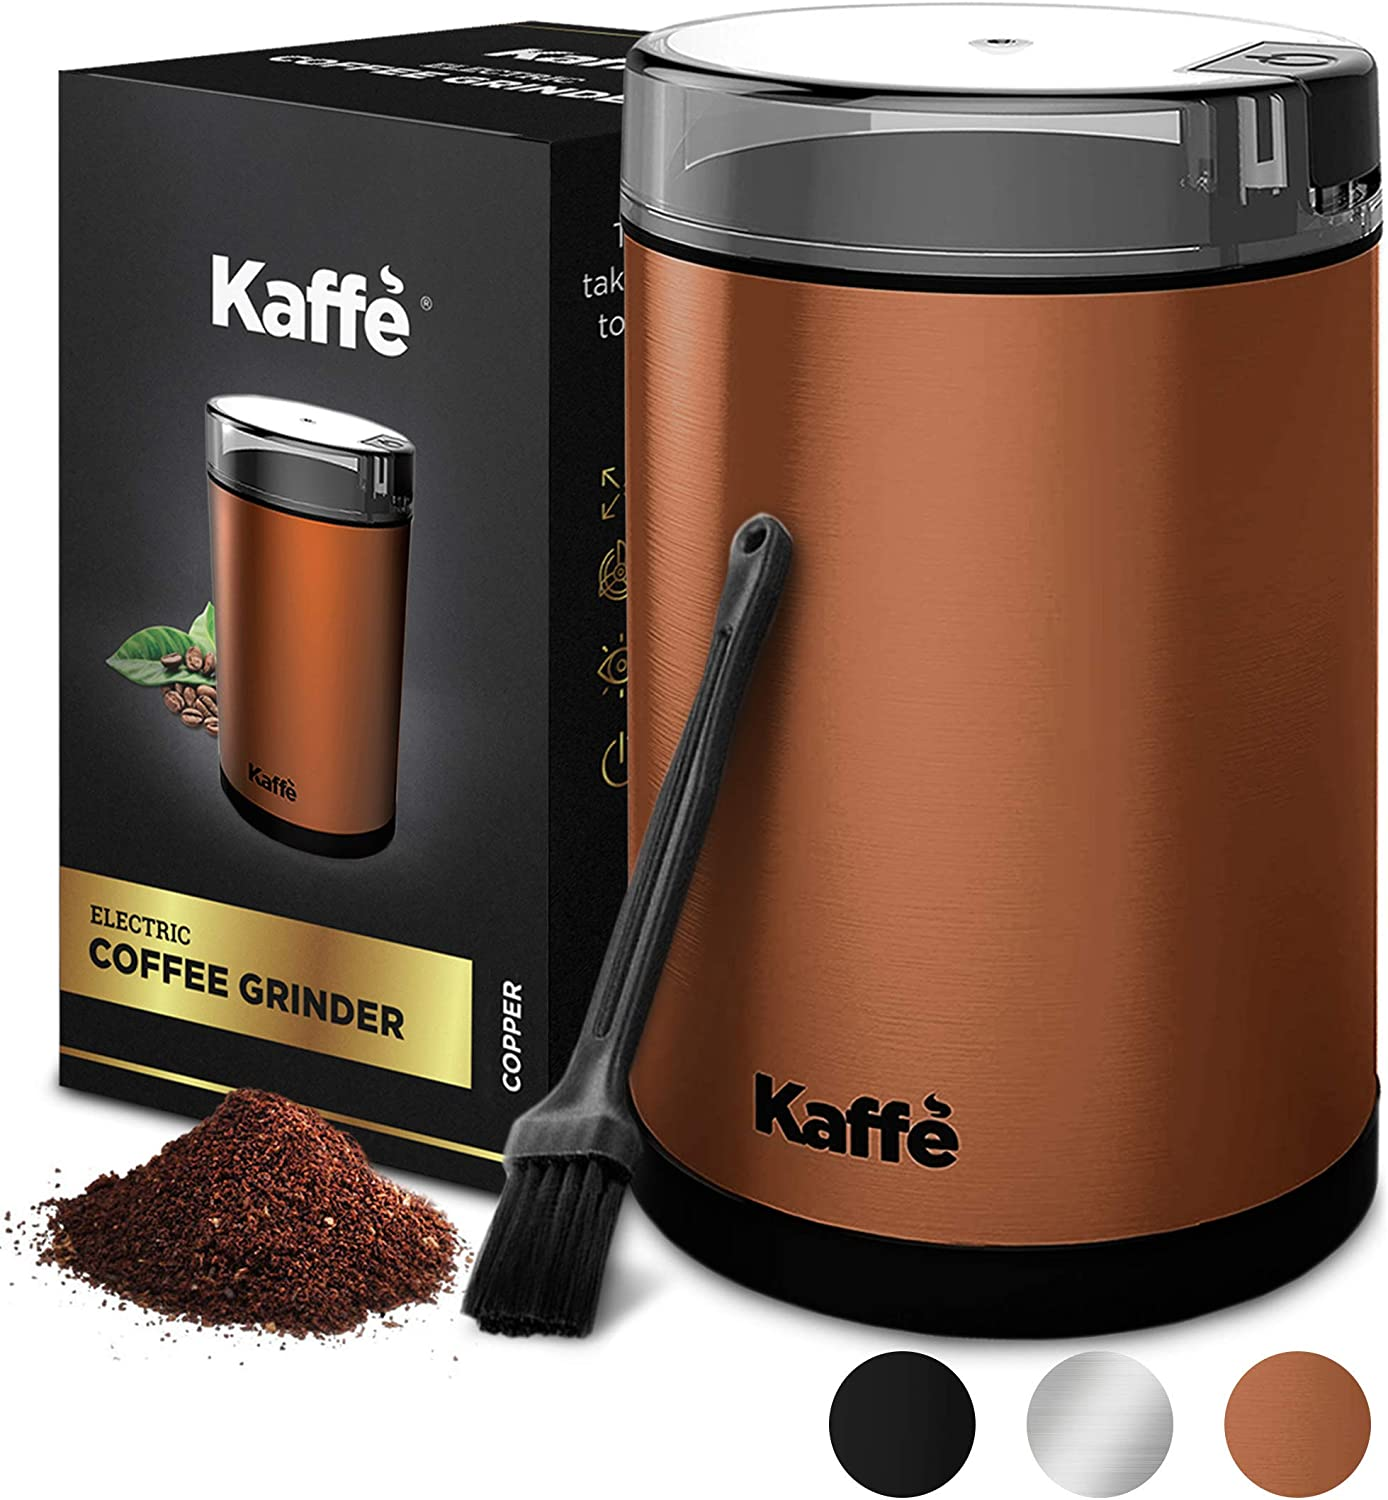 KF2030 Electric Coffee Grinder by Kaffe - Copper 2.5oz Capacity with Easy On/Off Button. Cleaning Brush Included!